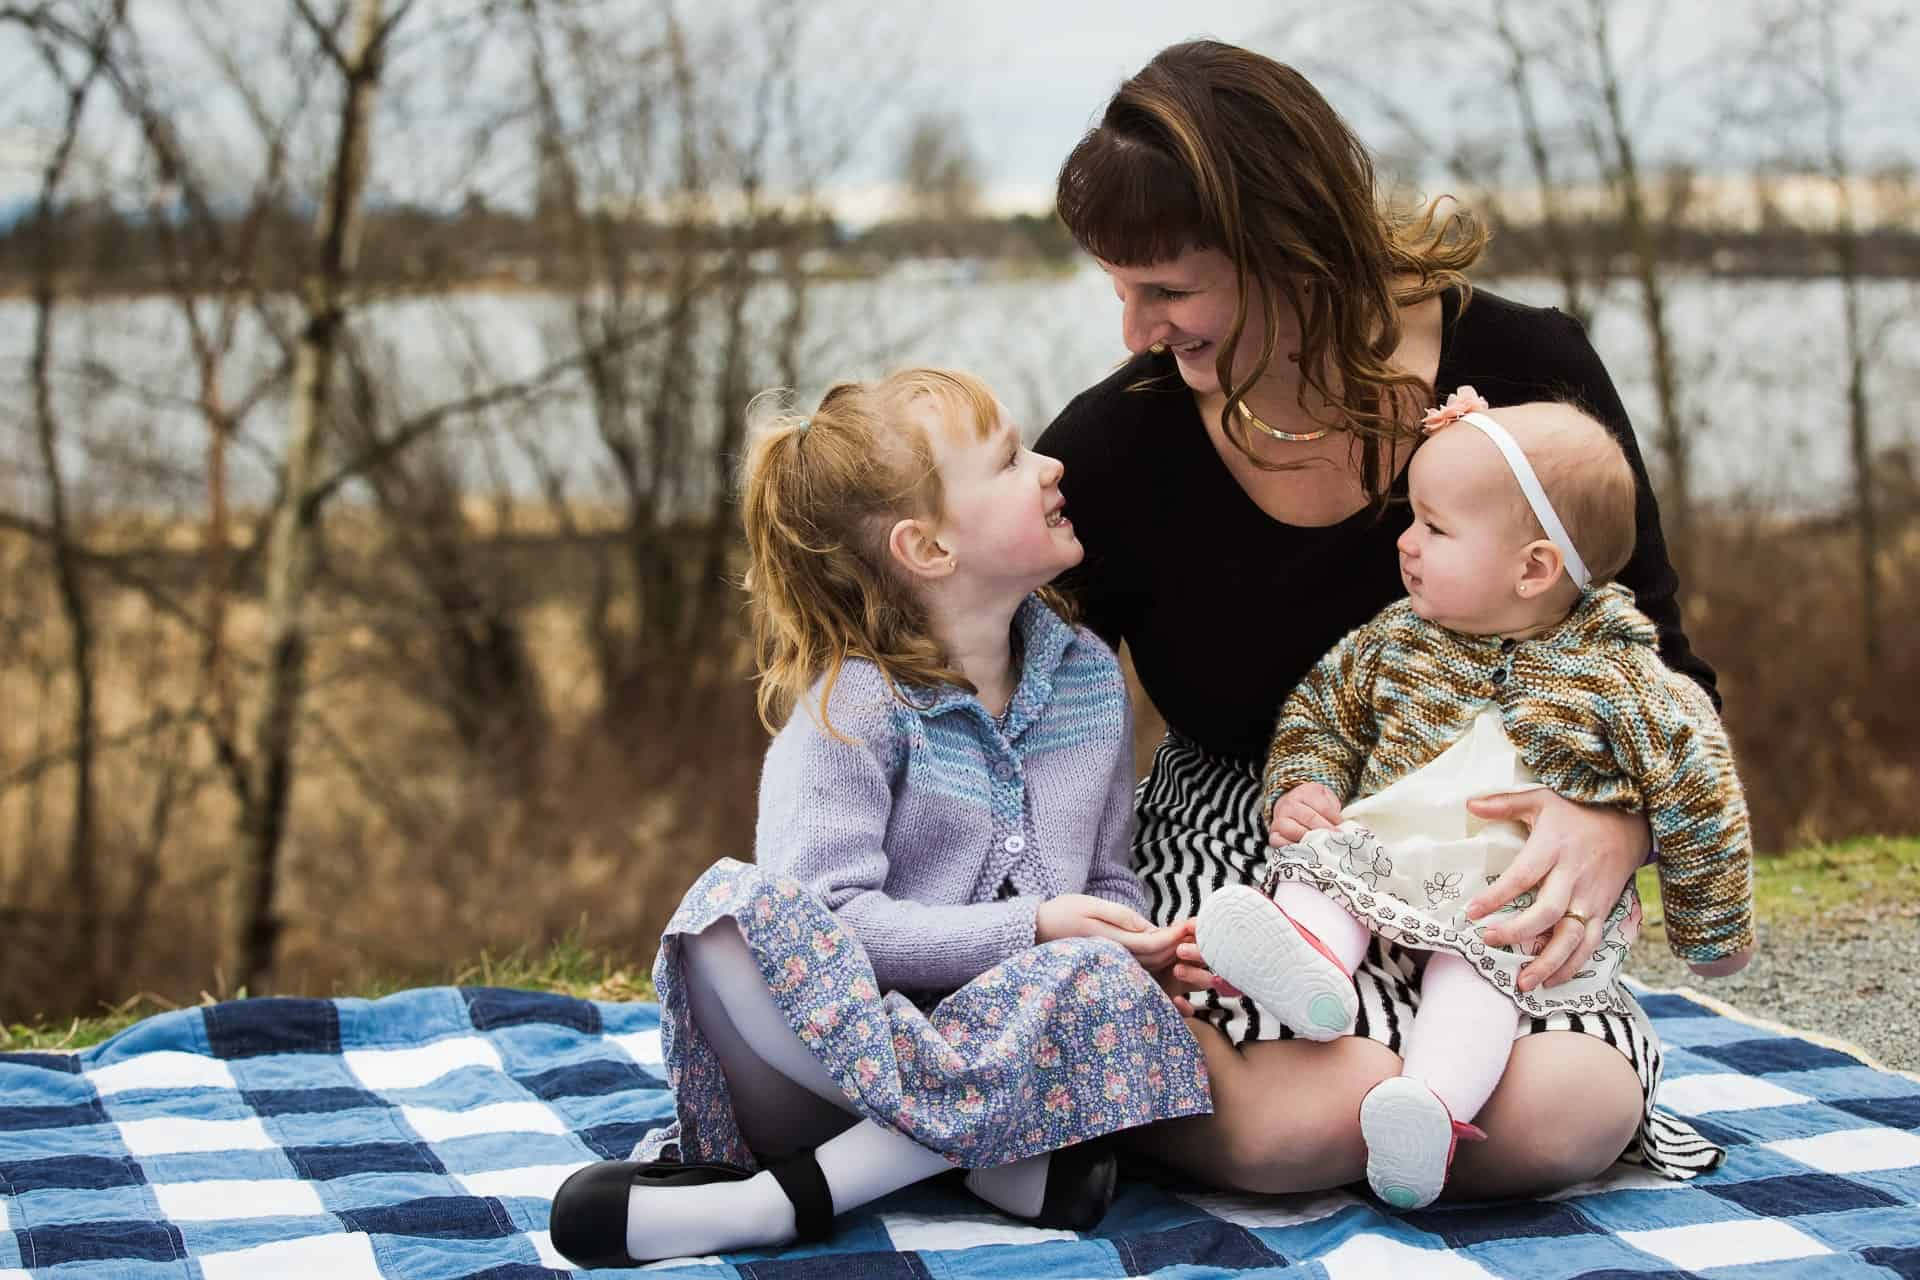 mother and two daughters sitting on a blanket by a river smiling at each other